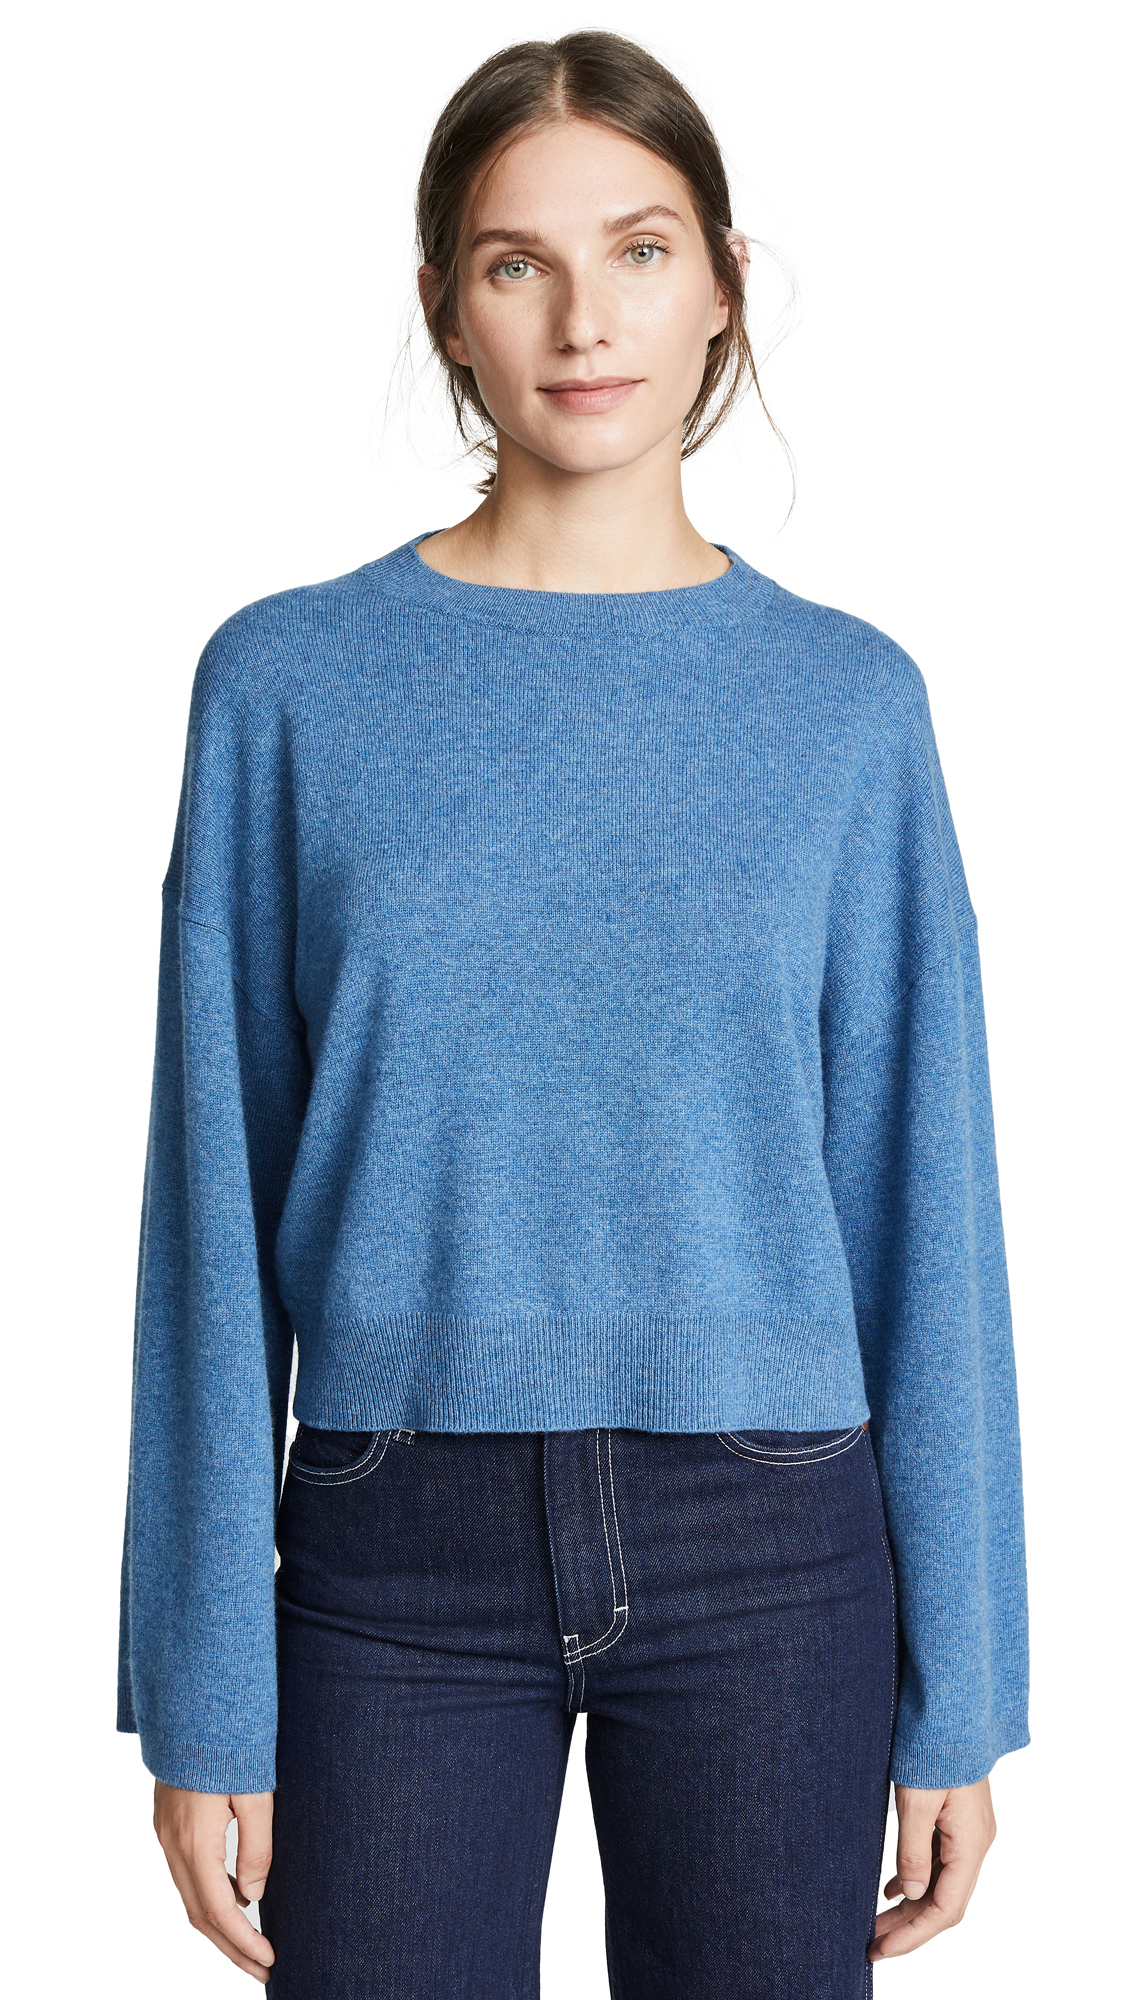 Theory Wide Sleeve Cashmere Pull Over - Heather Denim